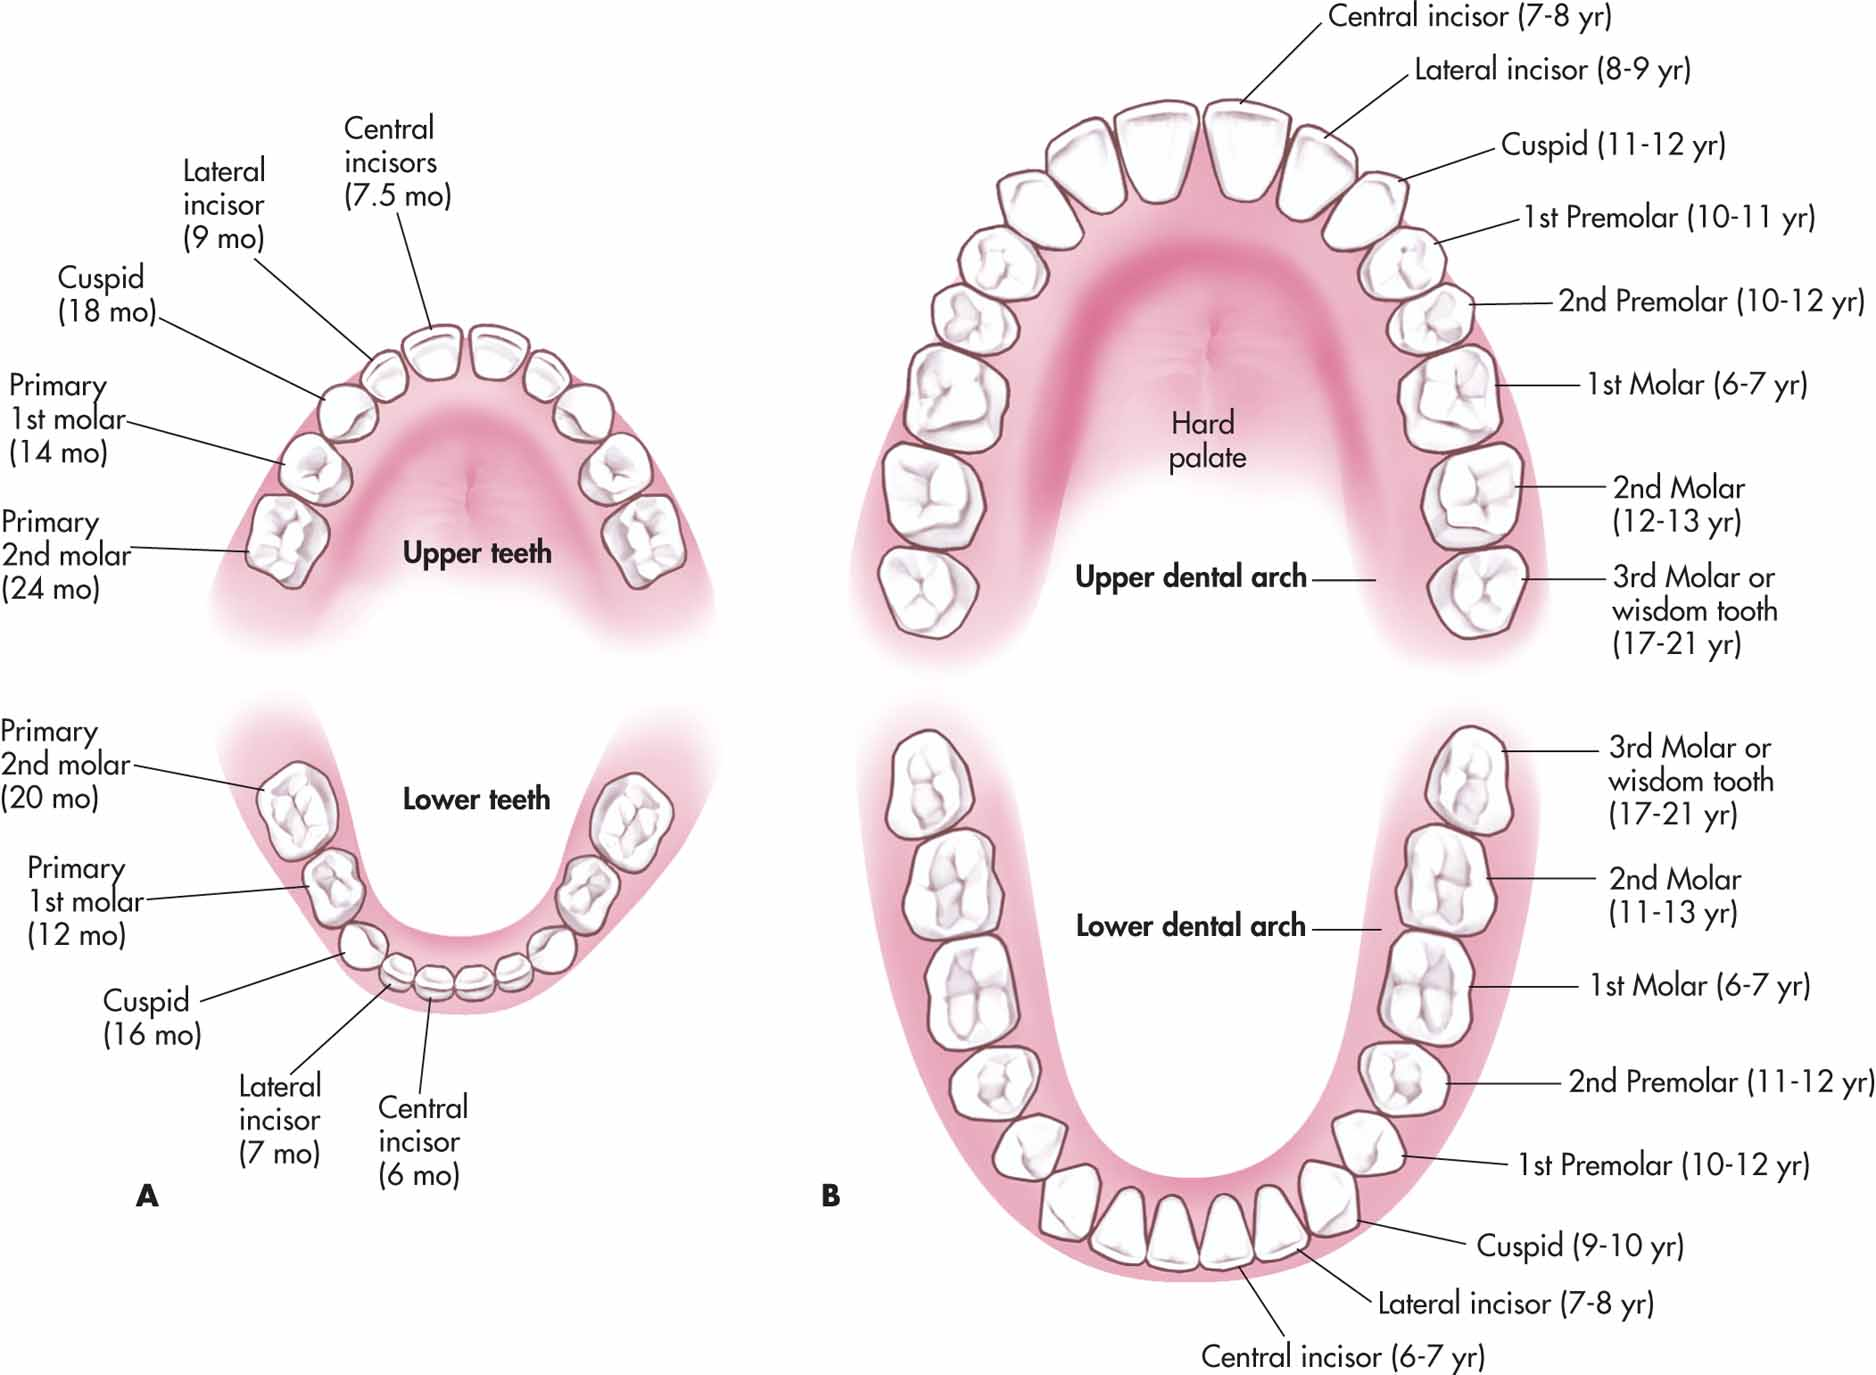 adult tooth diagram peavey t 60 wiring deciduous and permanent teeth structure of a